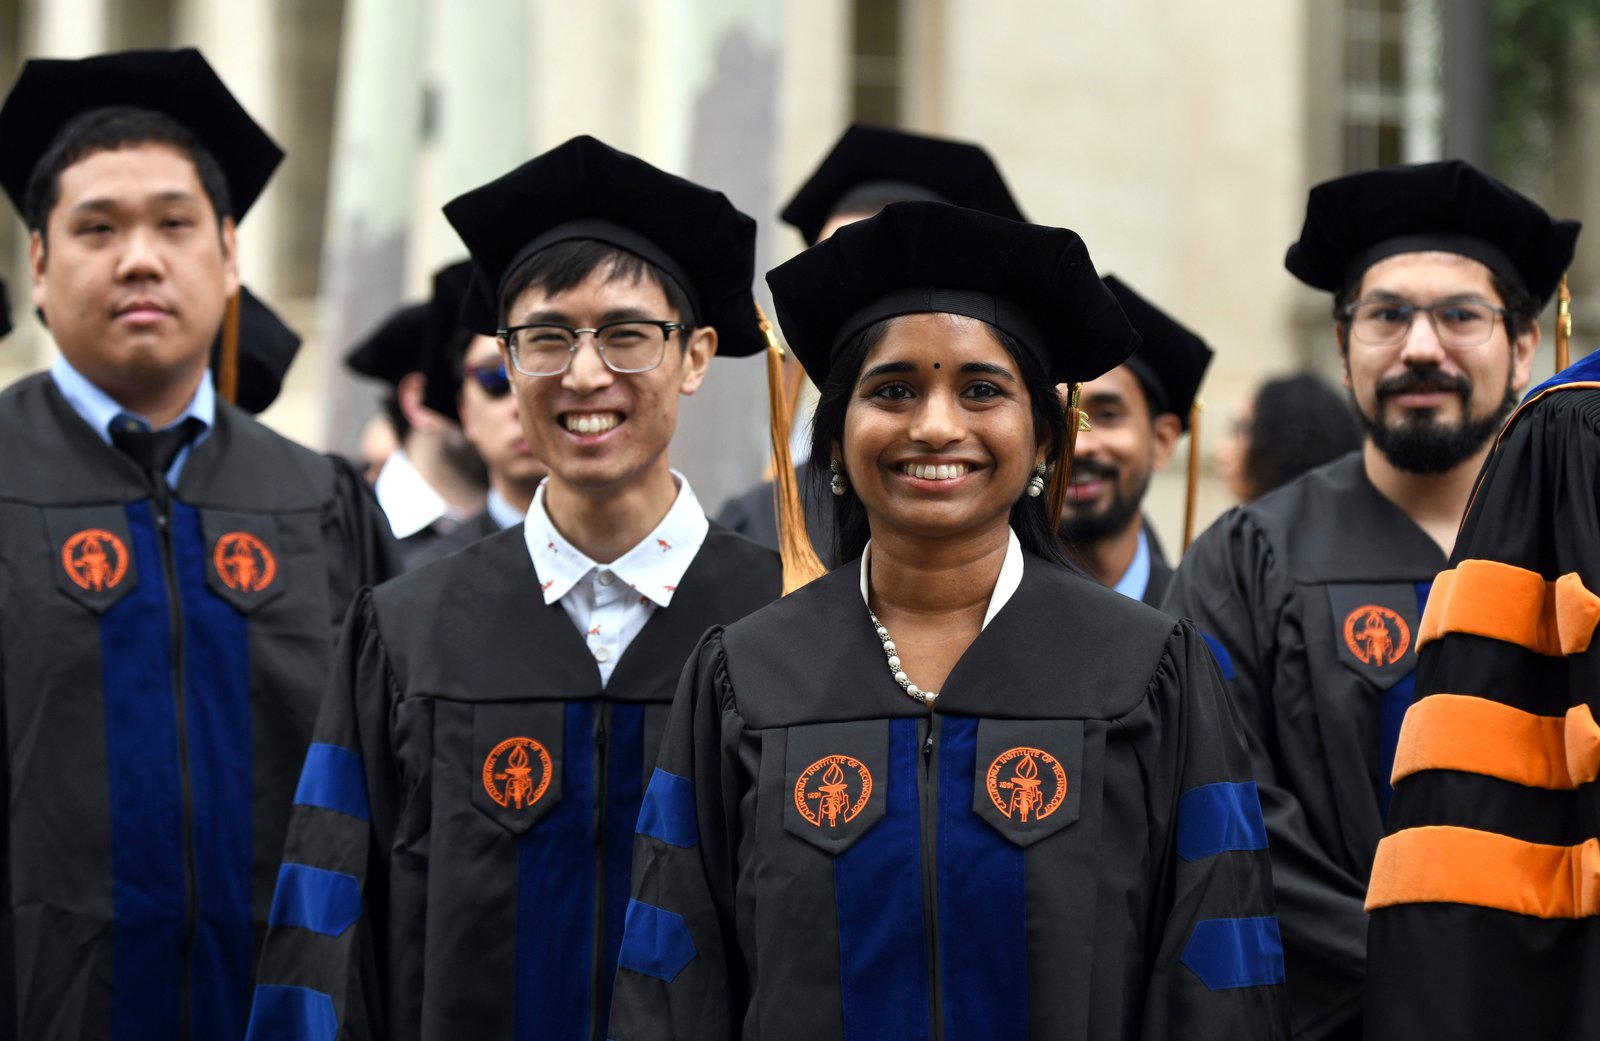 Image of students at Commencement.